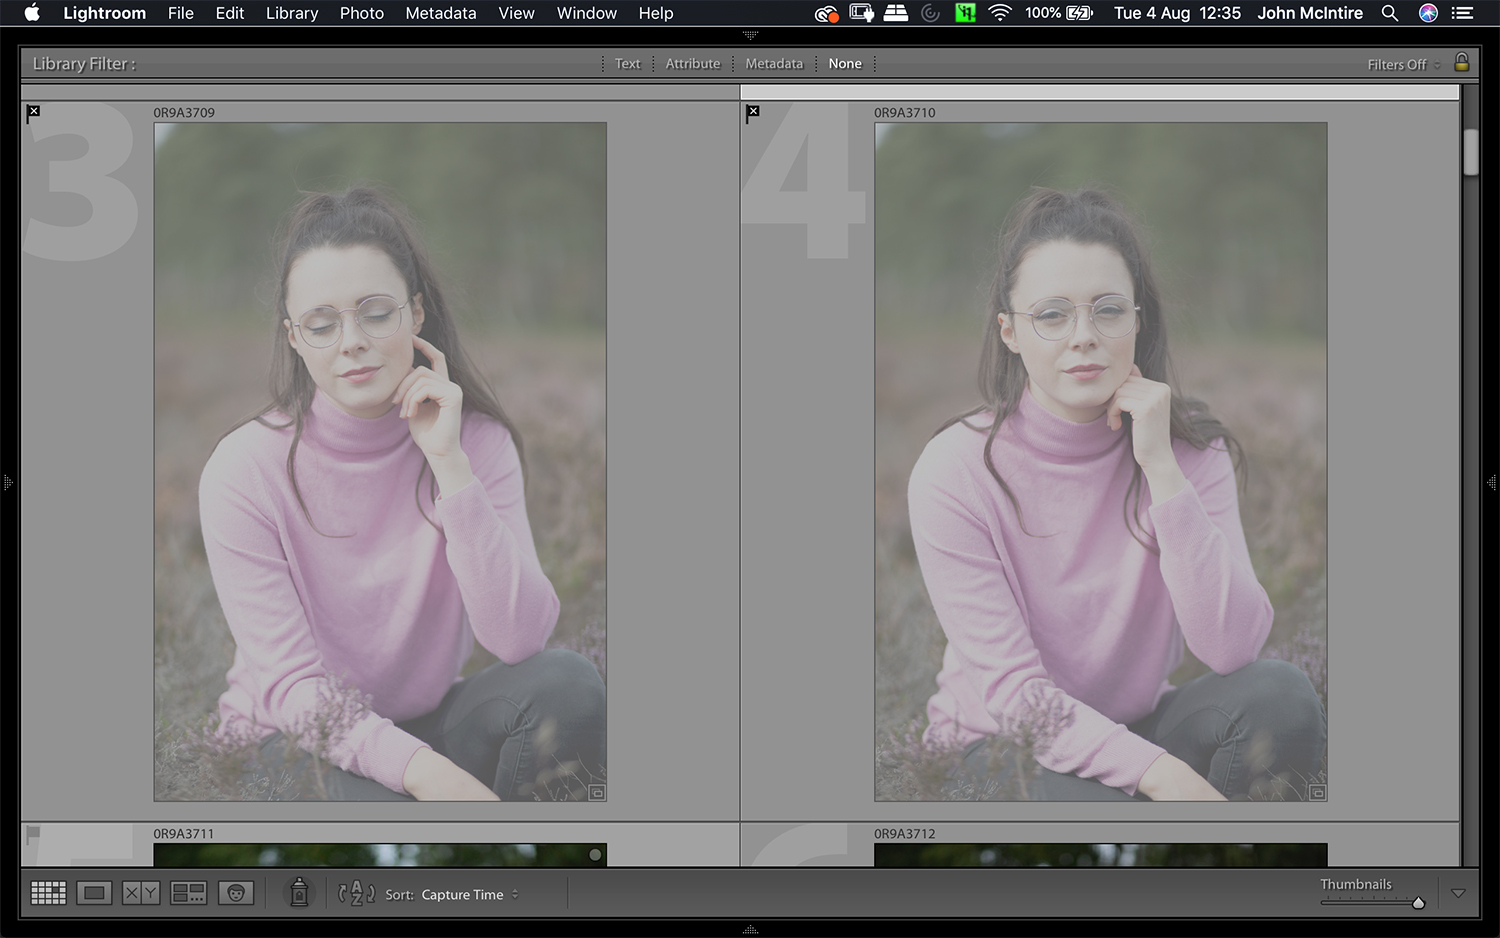 Lightroom lets you mark photos as rejects, which makes culling images a breeze.